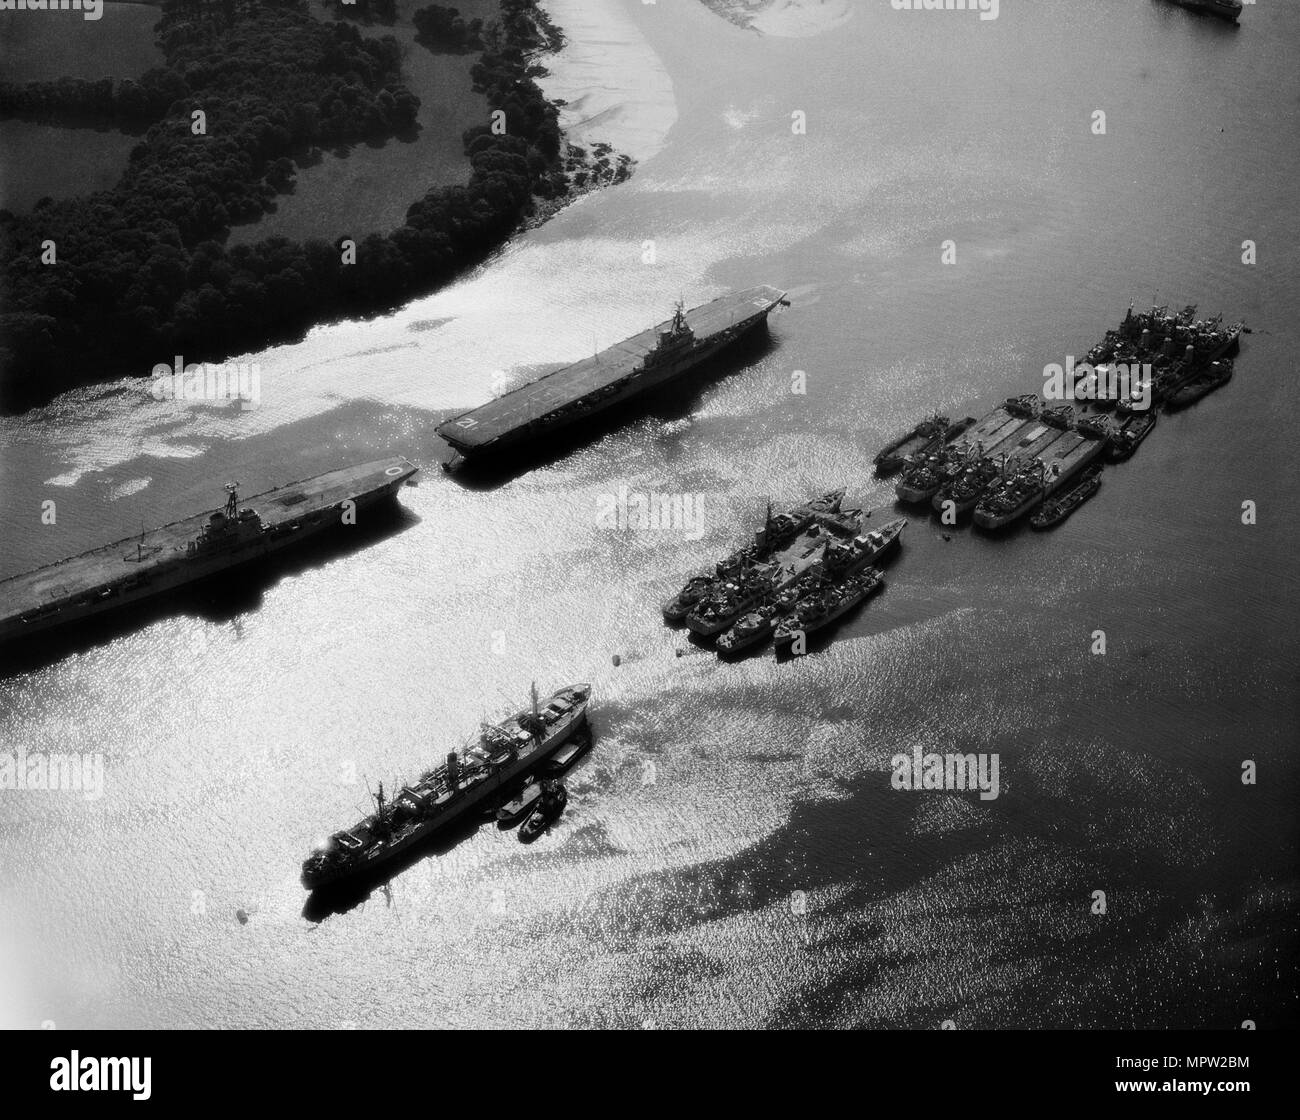 Royal Navy aircraft carriers and other military ships on the River Tamar, Plymouth, Devon, 1959. Artist: Harold Wingham. - Stock Image